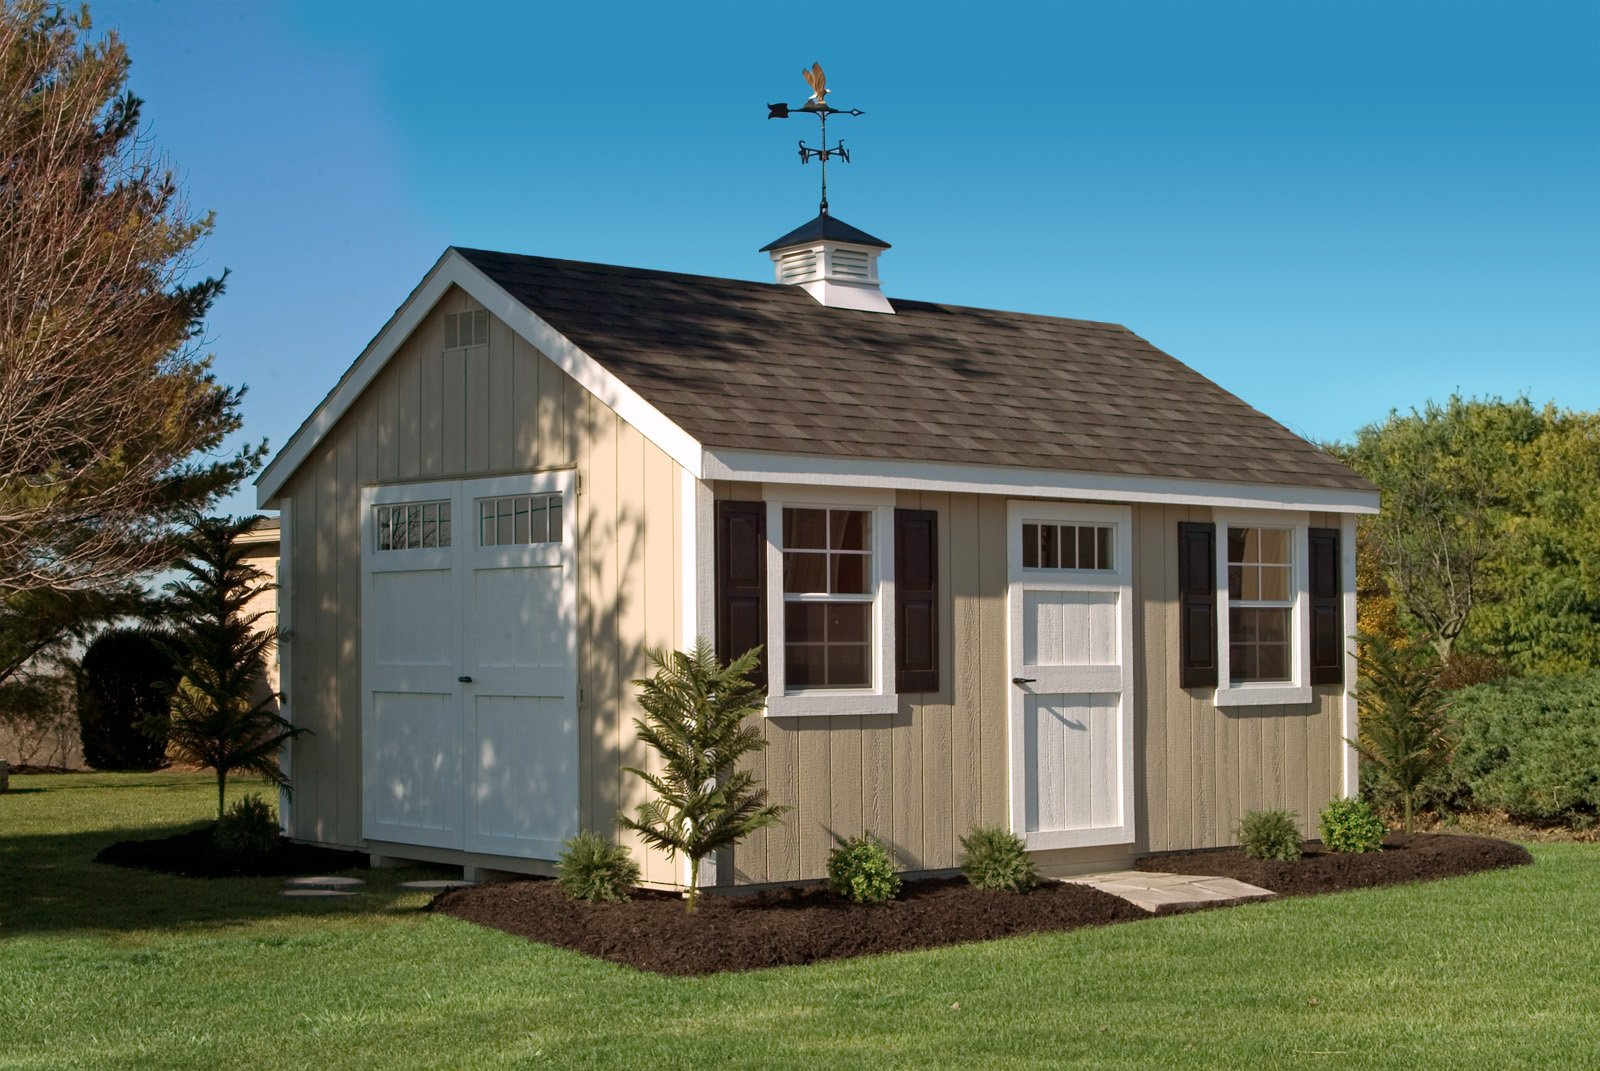 04-Deluxe-CapeCod-Beige 12×14 starting3580 as shown 4780